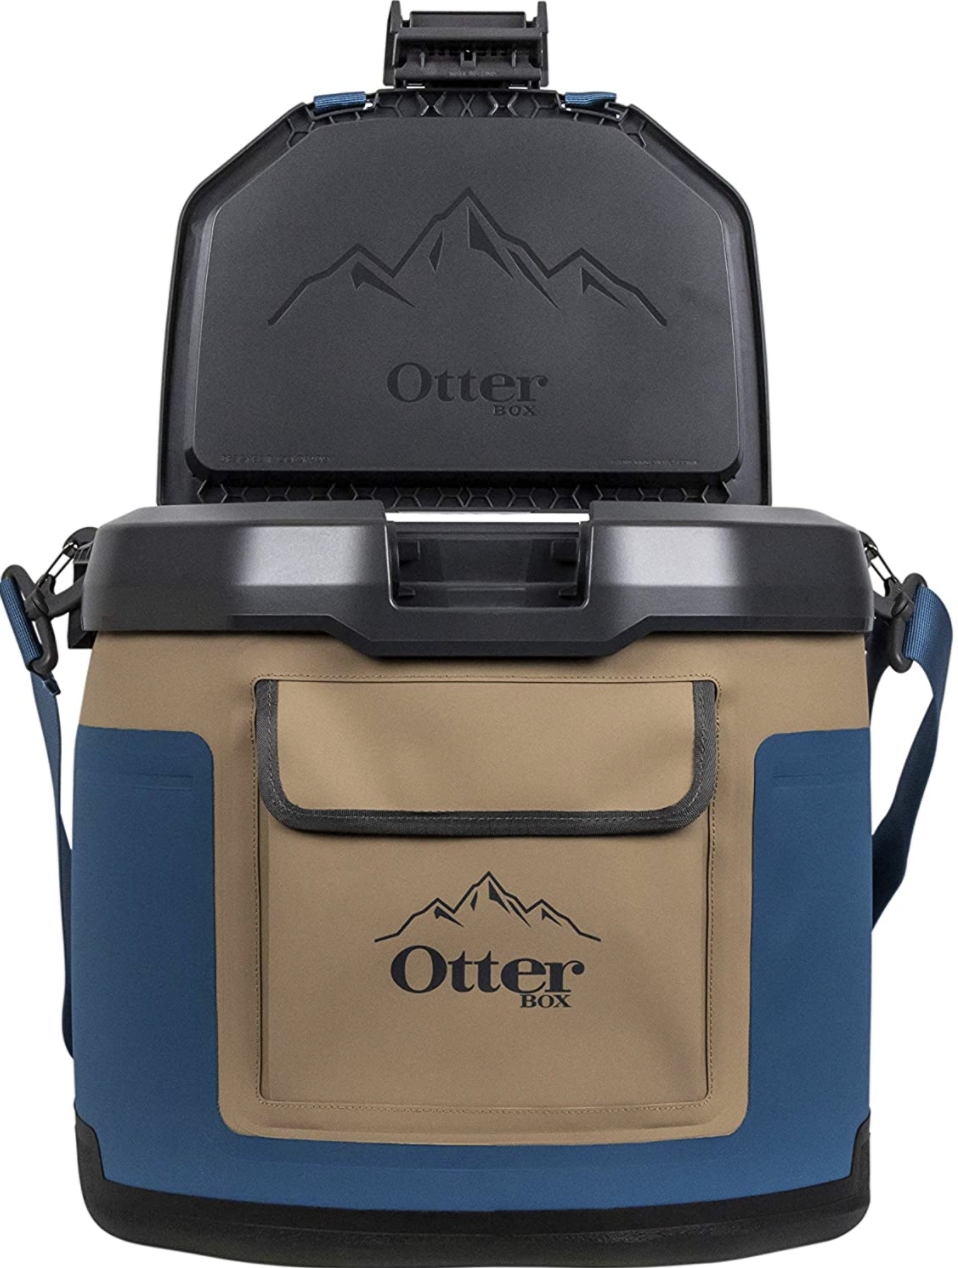 Best gifts for dads – OtterBox Trooper Cooler